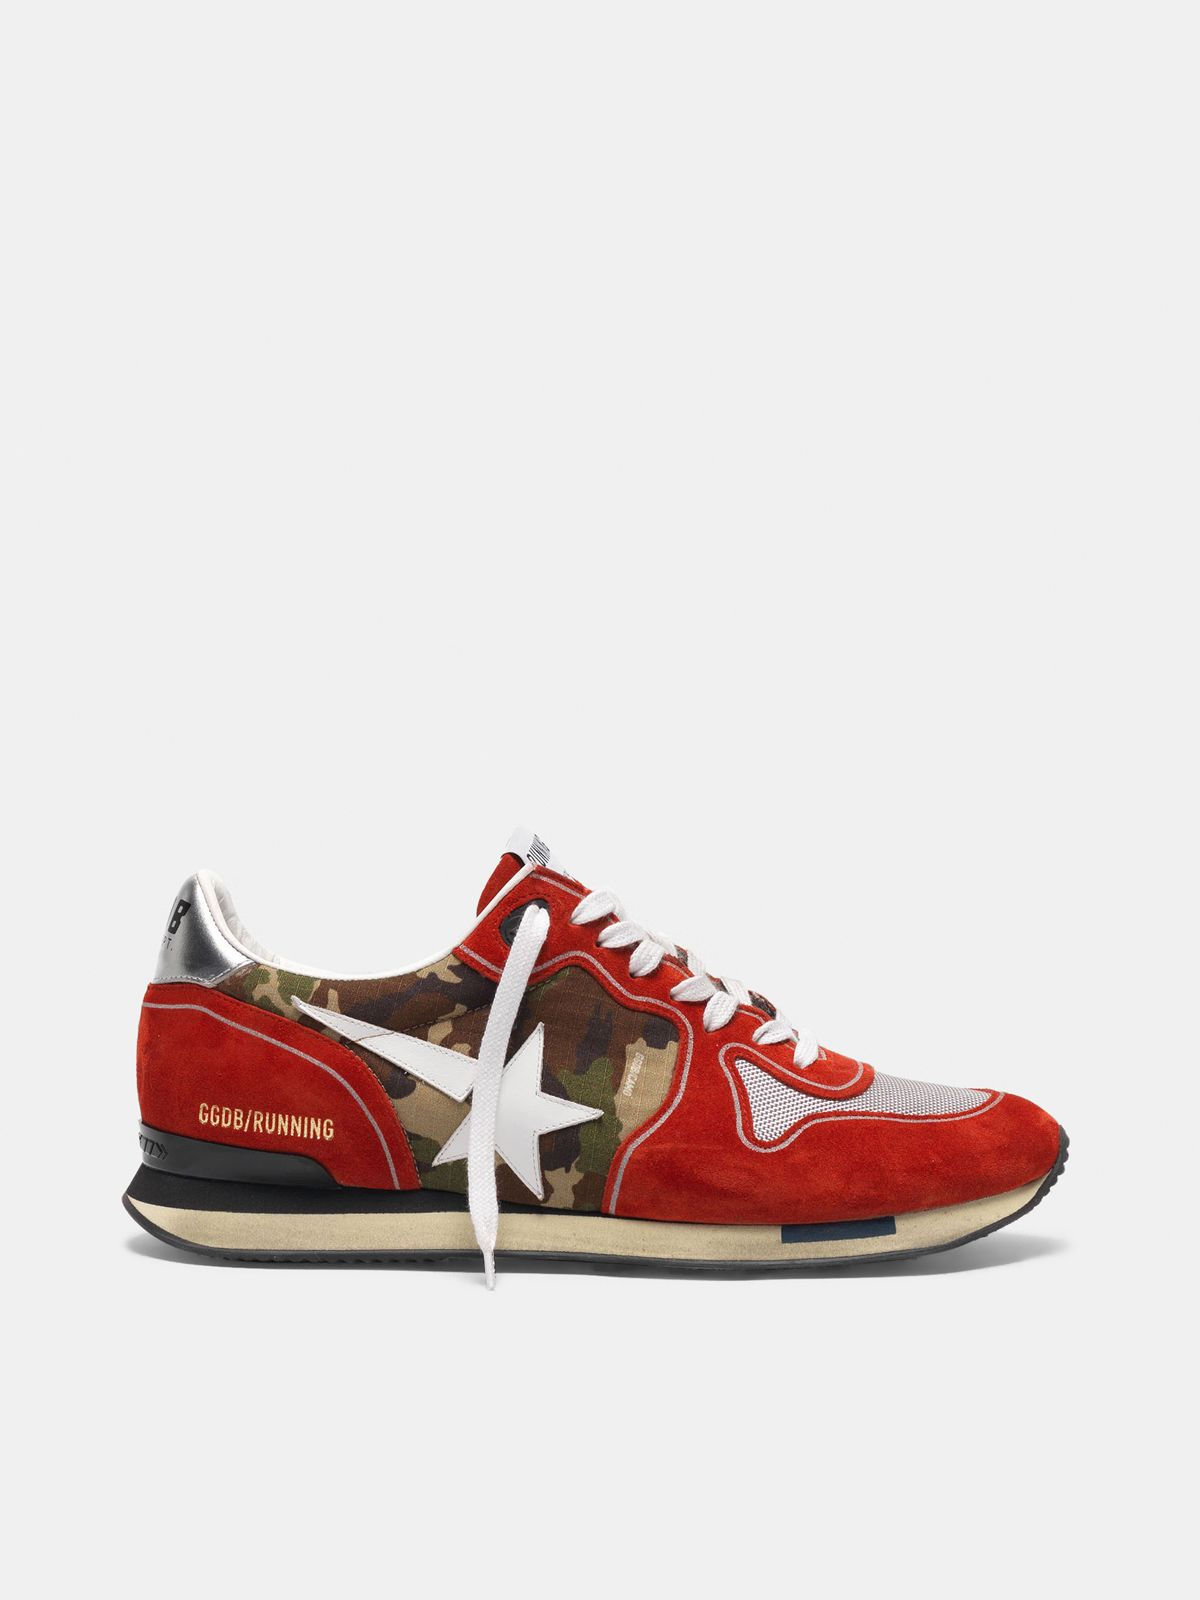 Golden Goose - Red Running sneakers in suede with camouflage detail in